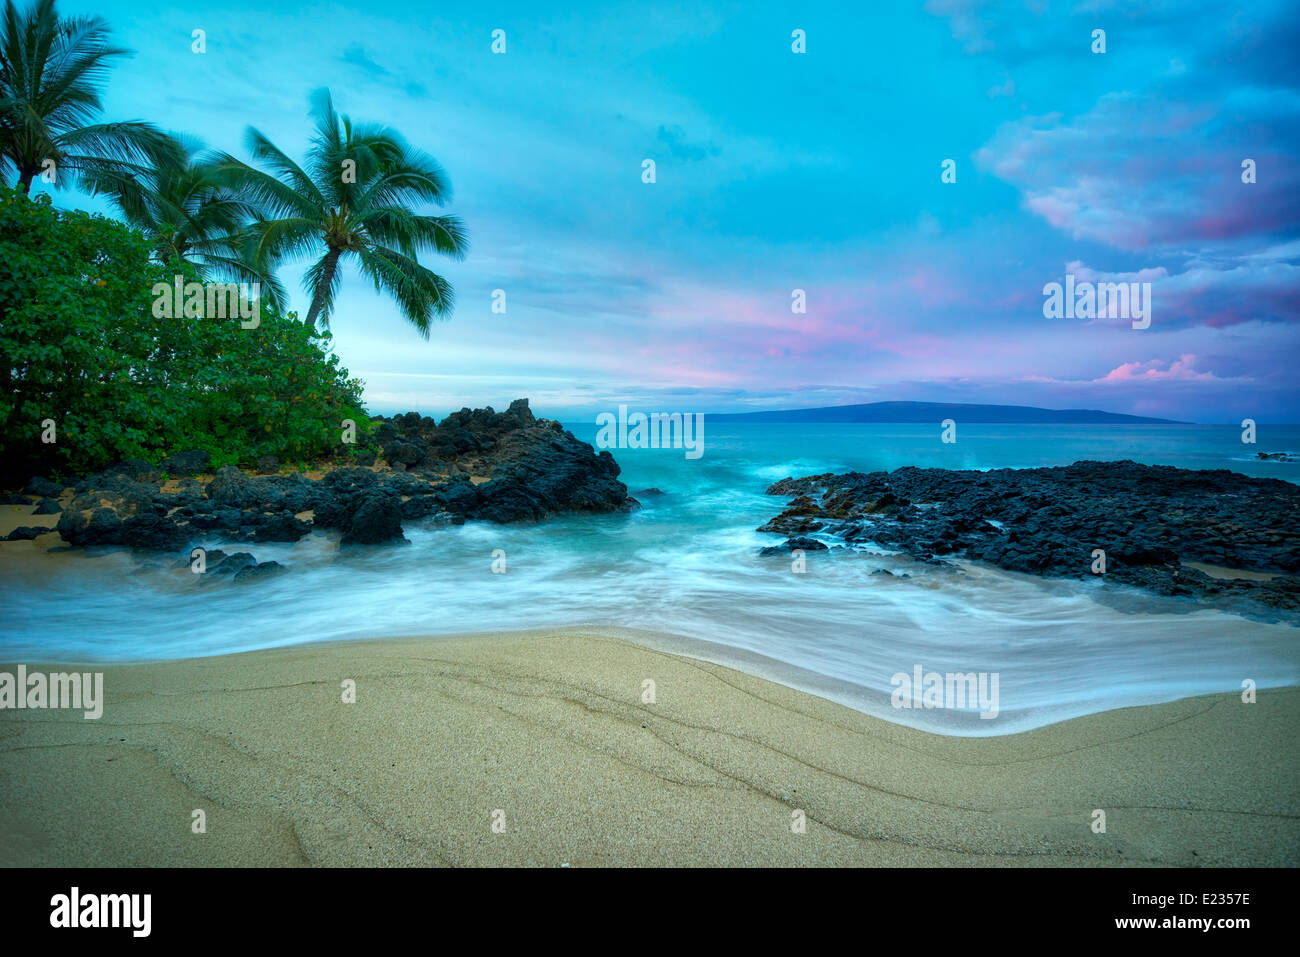 Secluded beach with palm trees and sunrise. Maui, Hawaii Stock Photo